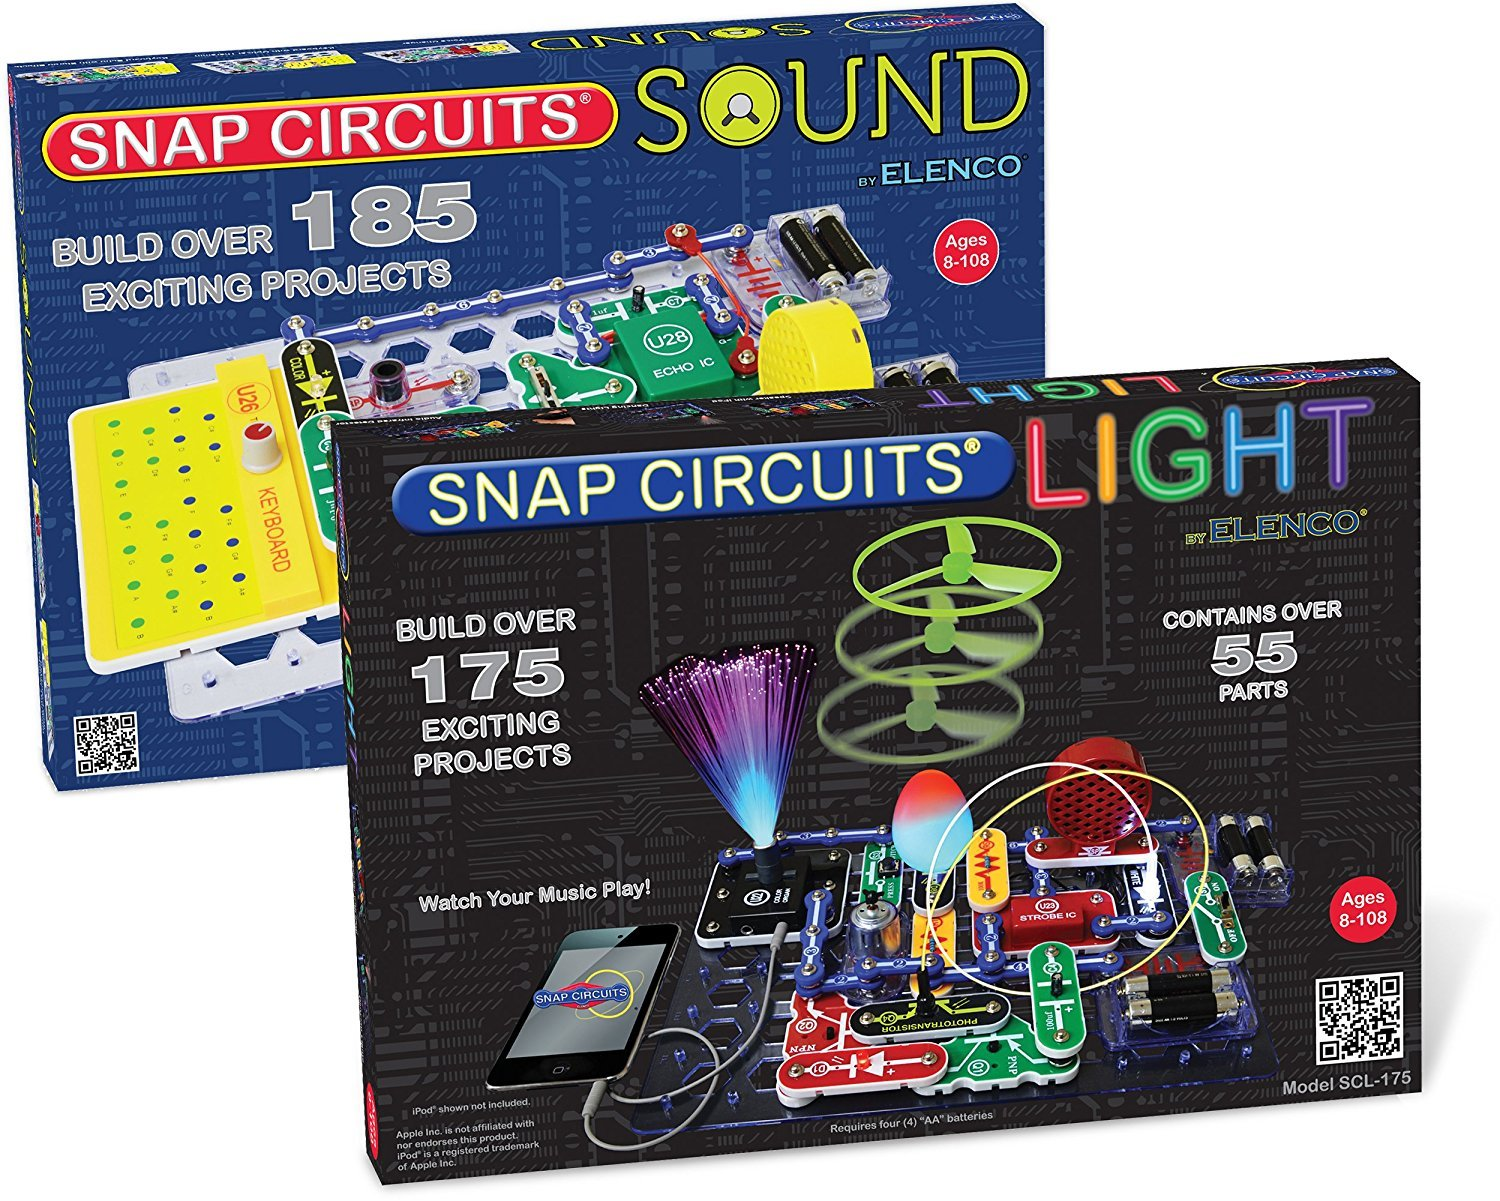 Elenco Electronics Snap Circuits R Deluxe Sound Light Scg125 Green Alternative Energy Kit Learning Combo With Battery Eliminator No Soldering Tools Batteries Its A